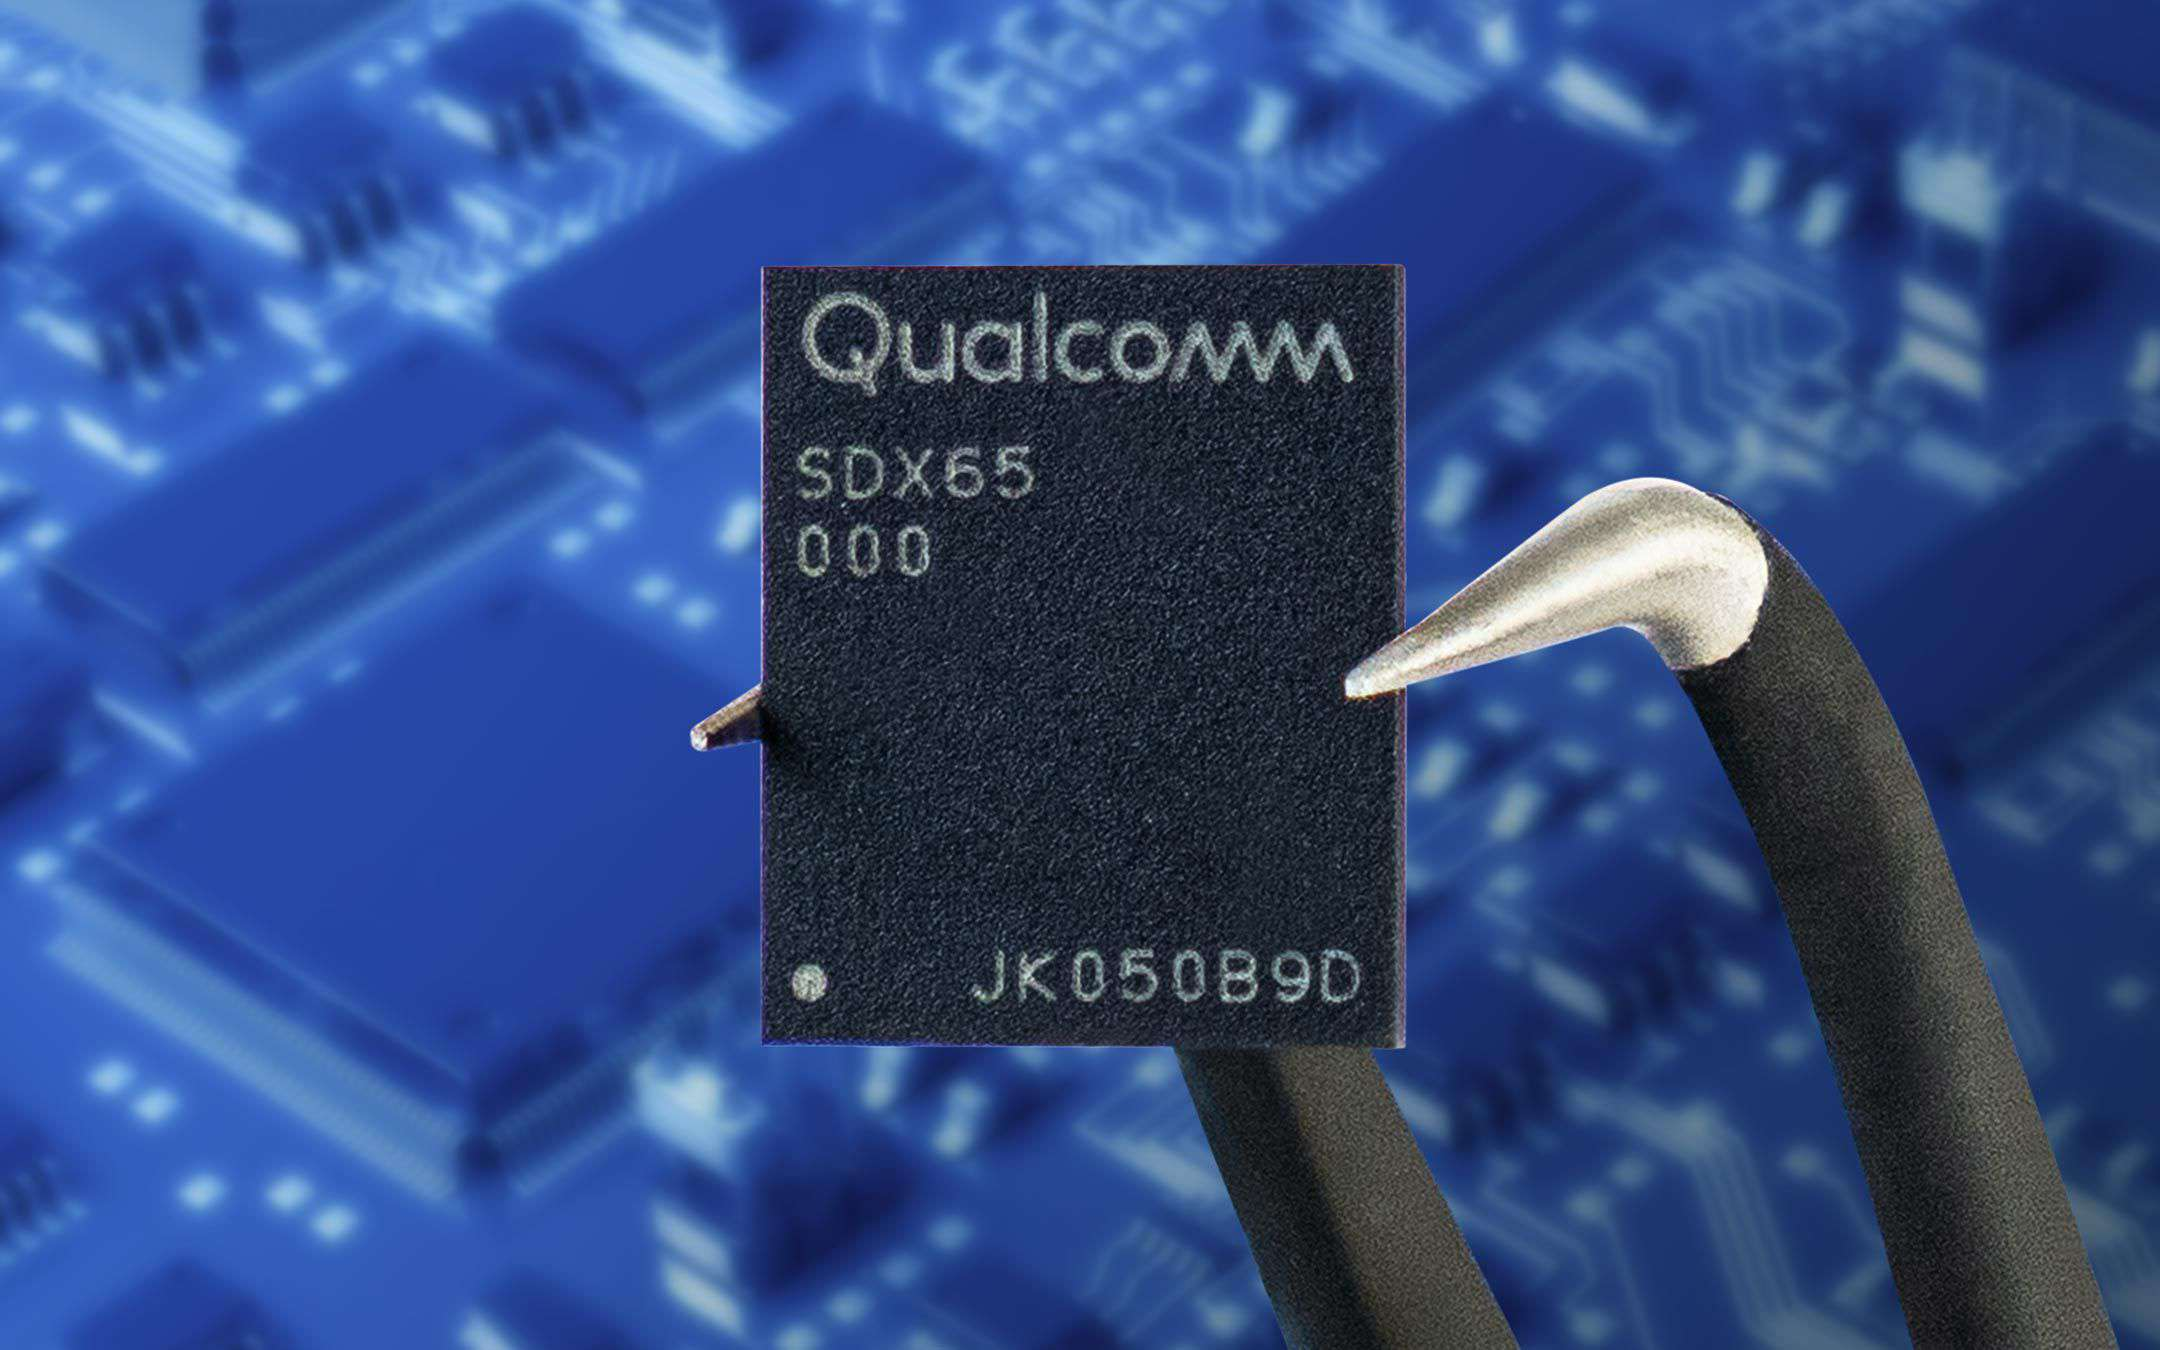 Qualcomm, news for 5G: from Snapdragon X65 to FWA